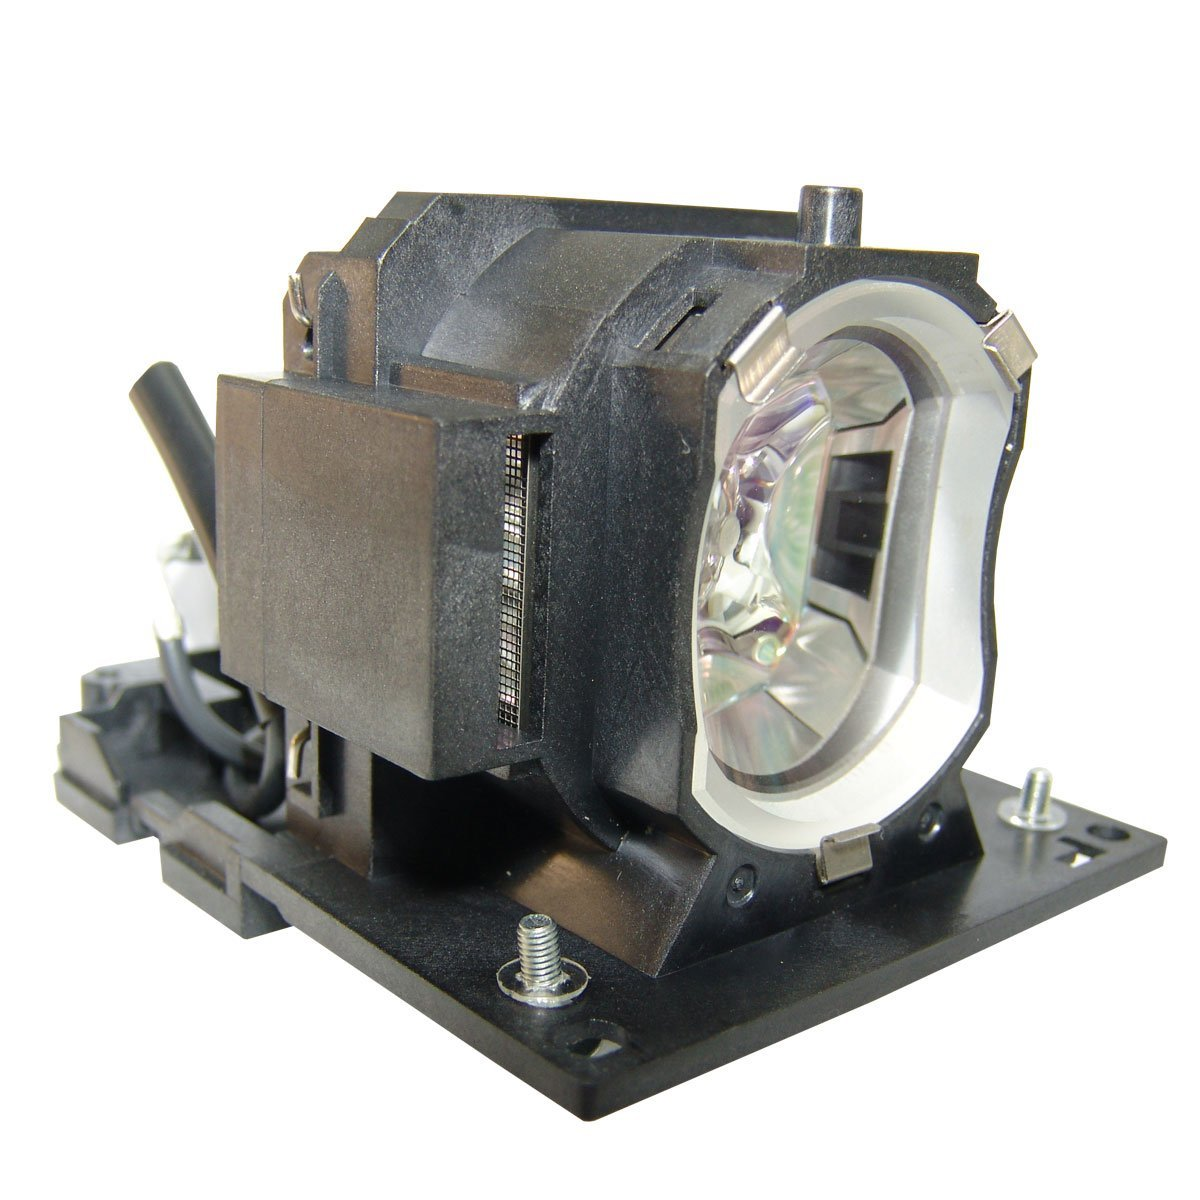 DT01181 DT-01181 for HITACHI CP-A220N CP-A3 CP-A300N CP-AW250N ED-A220NM CP-A250NL Projector Lamp Bulb With housing compatible projector lamp with housing for dt01181 hitachi cp a220n cp a221n cp a250nl cp a300n projectors